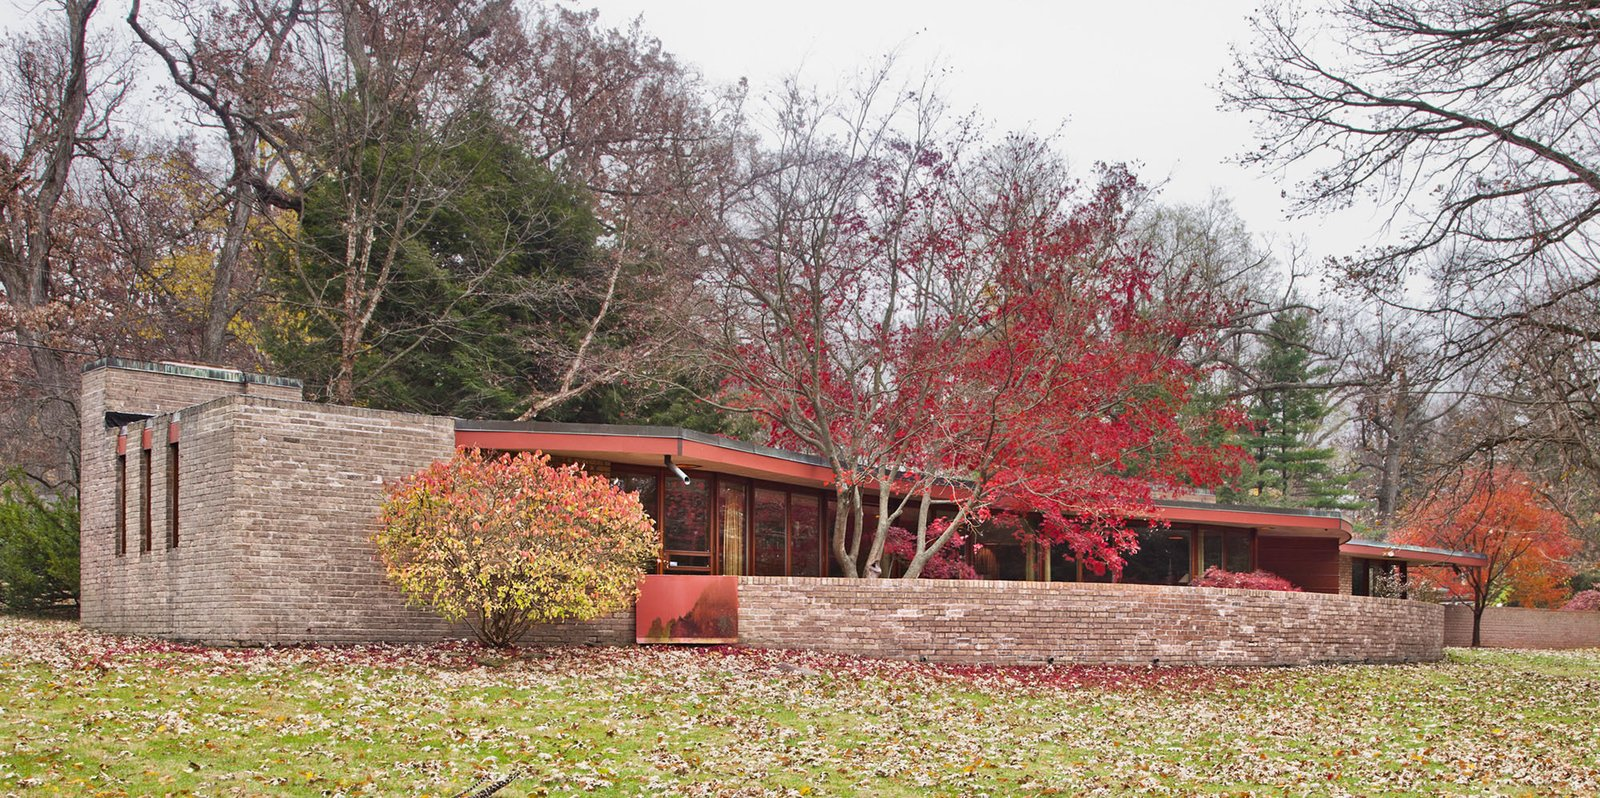 The Laurent House opens to the public for the first time on June 7 and will be open the first and last weekend of each month. Admission is $15. Photo courtesy of Wright Auction House.  Modern Master: Frank Lloyd Wright by Matthew Keeshin from Accessible Frank Lloyd Wright House in Illinois Is Reborn as a Museum